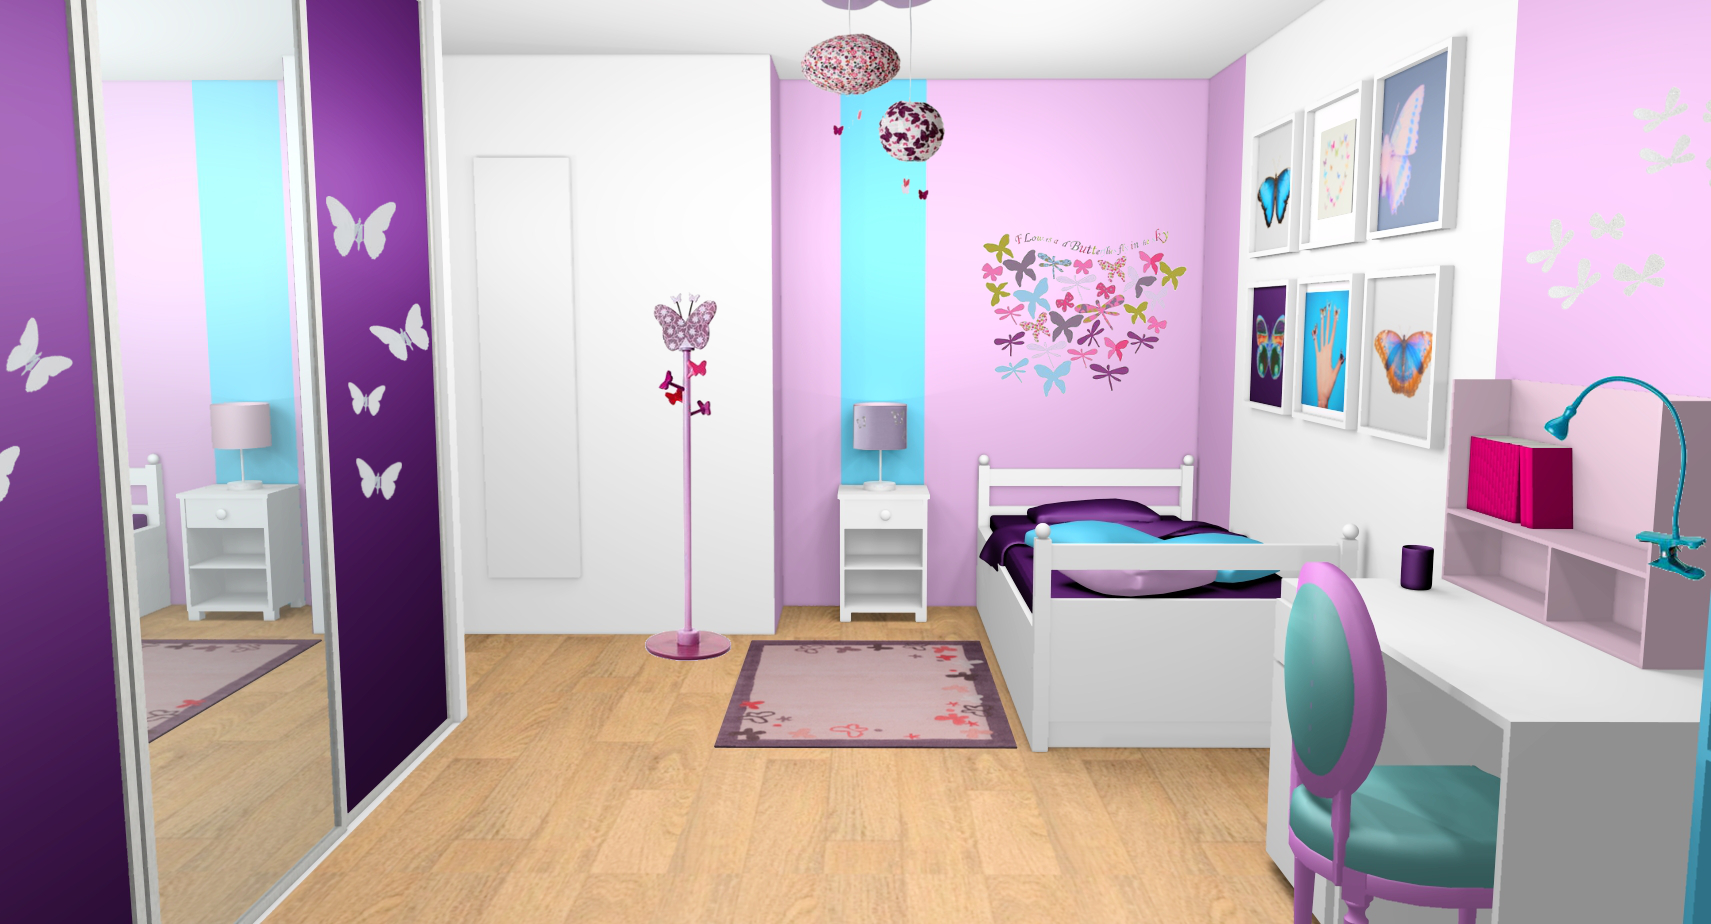 D coration interieur chambre fille for Decoration porte chambre fille